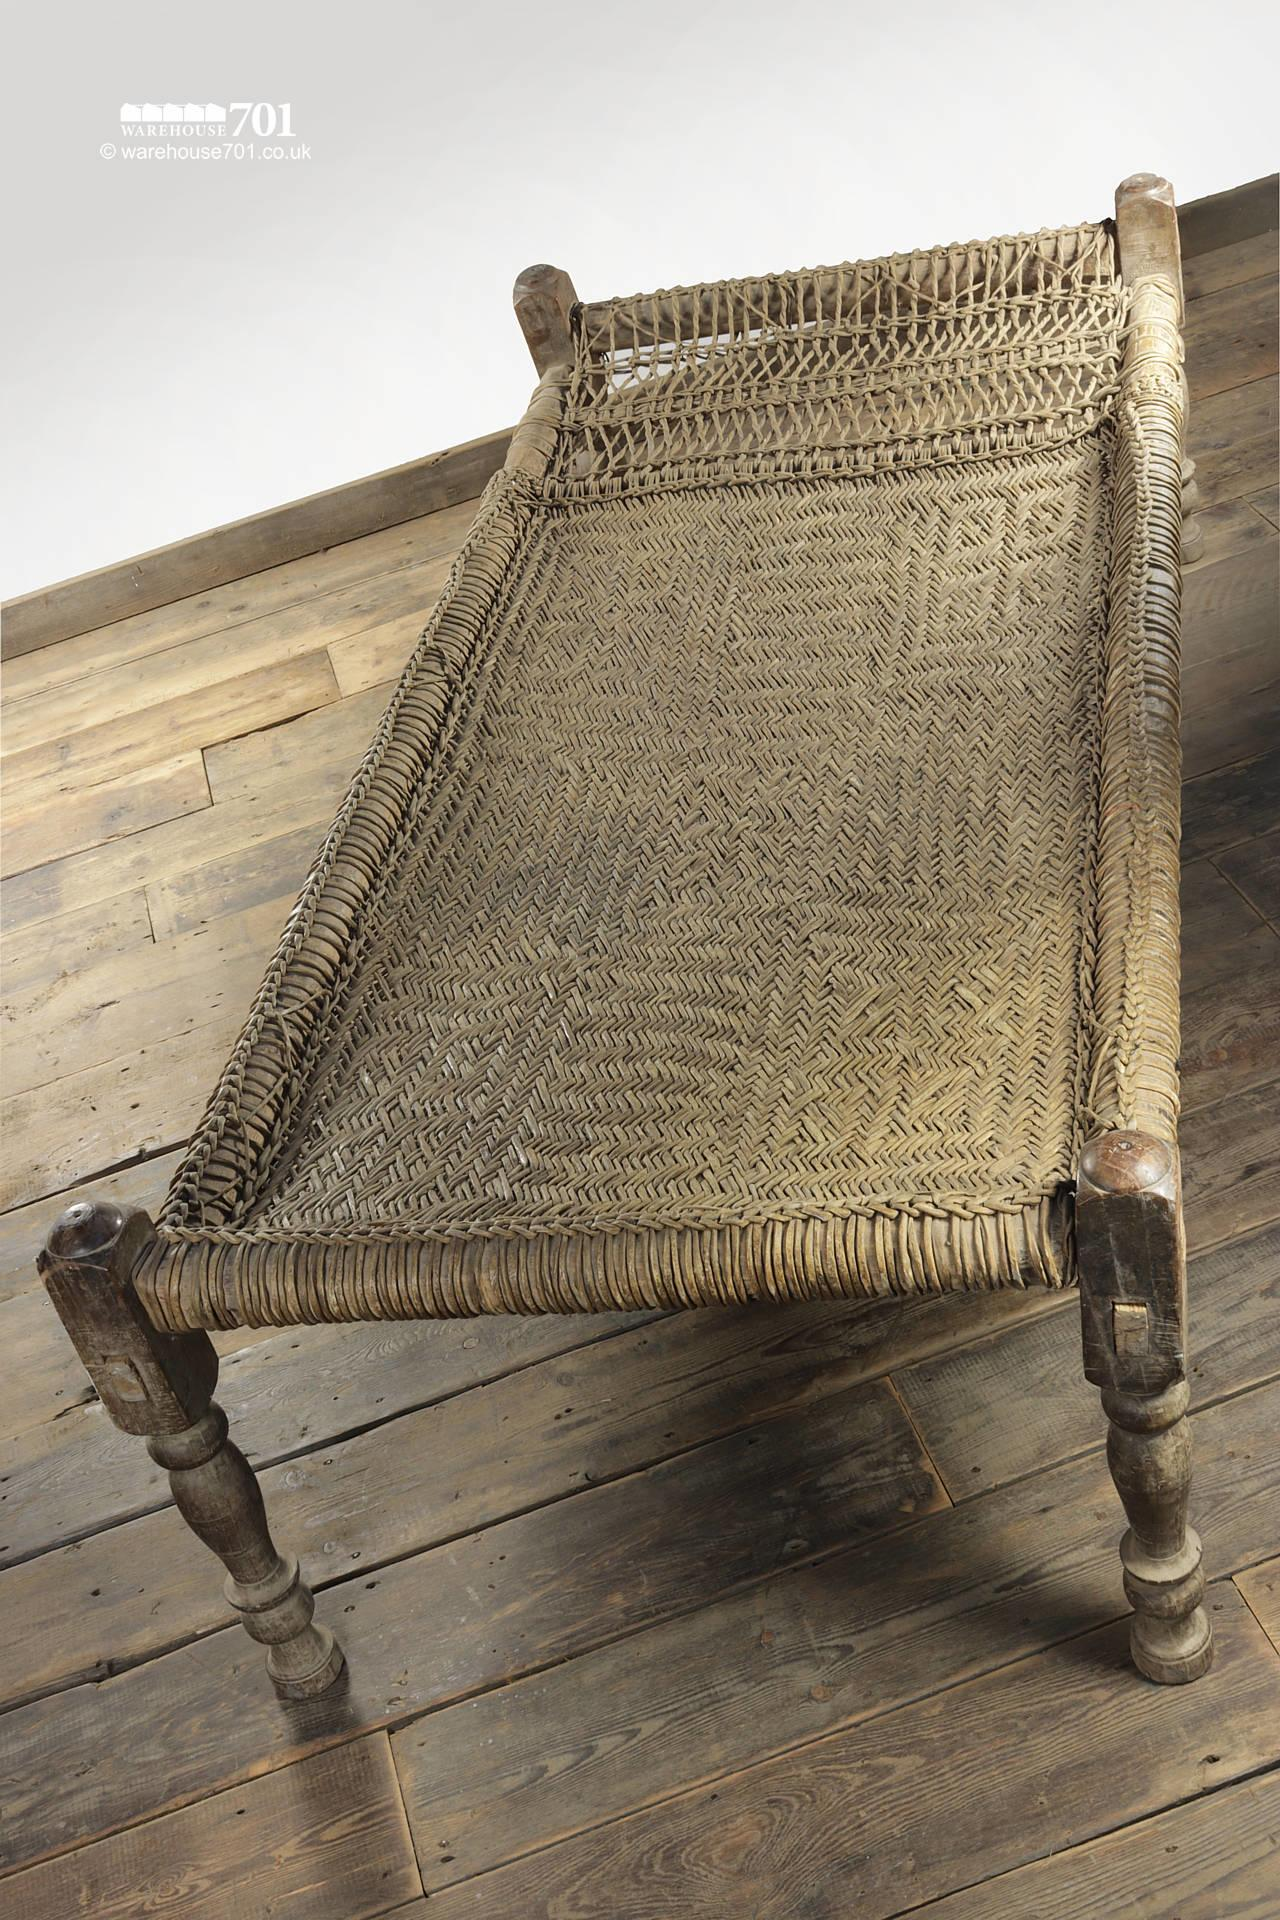 Decorative Wood and Woven Rattan Bed #3